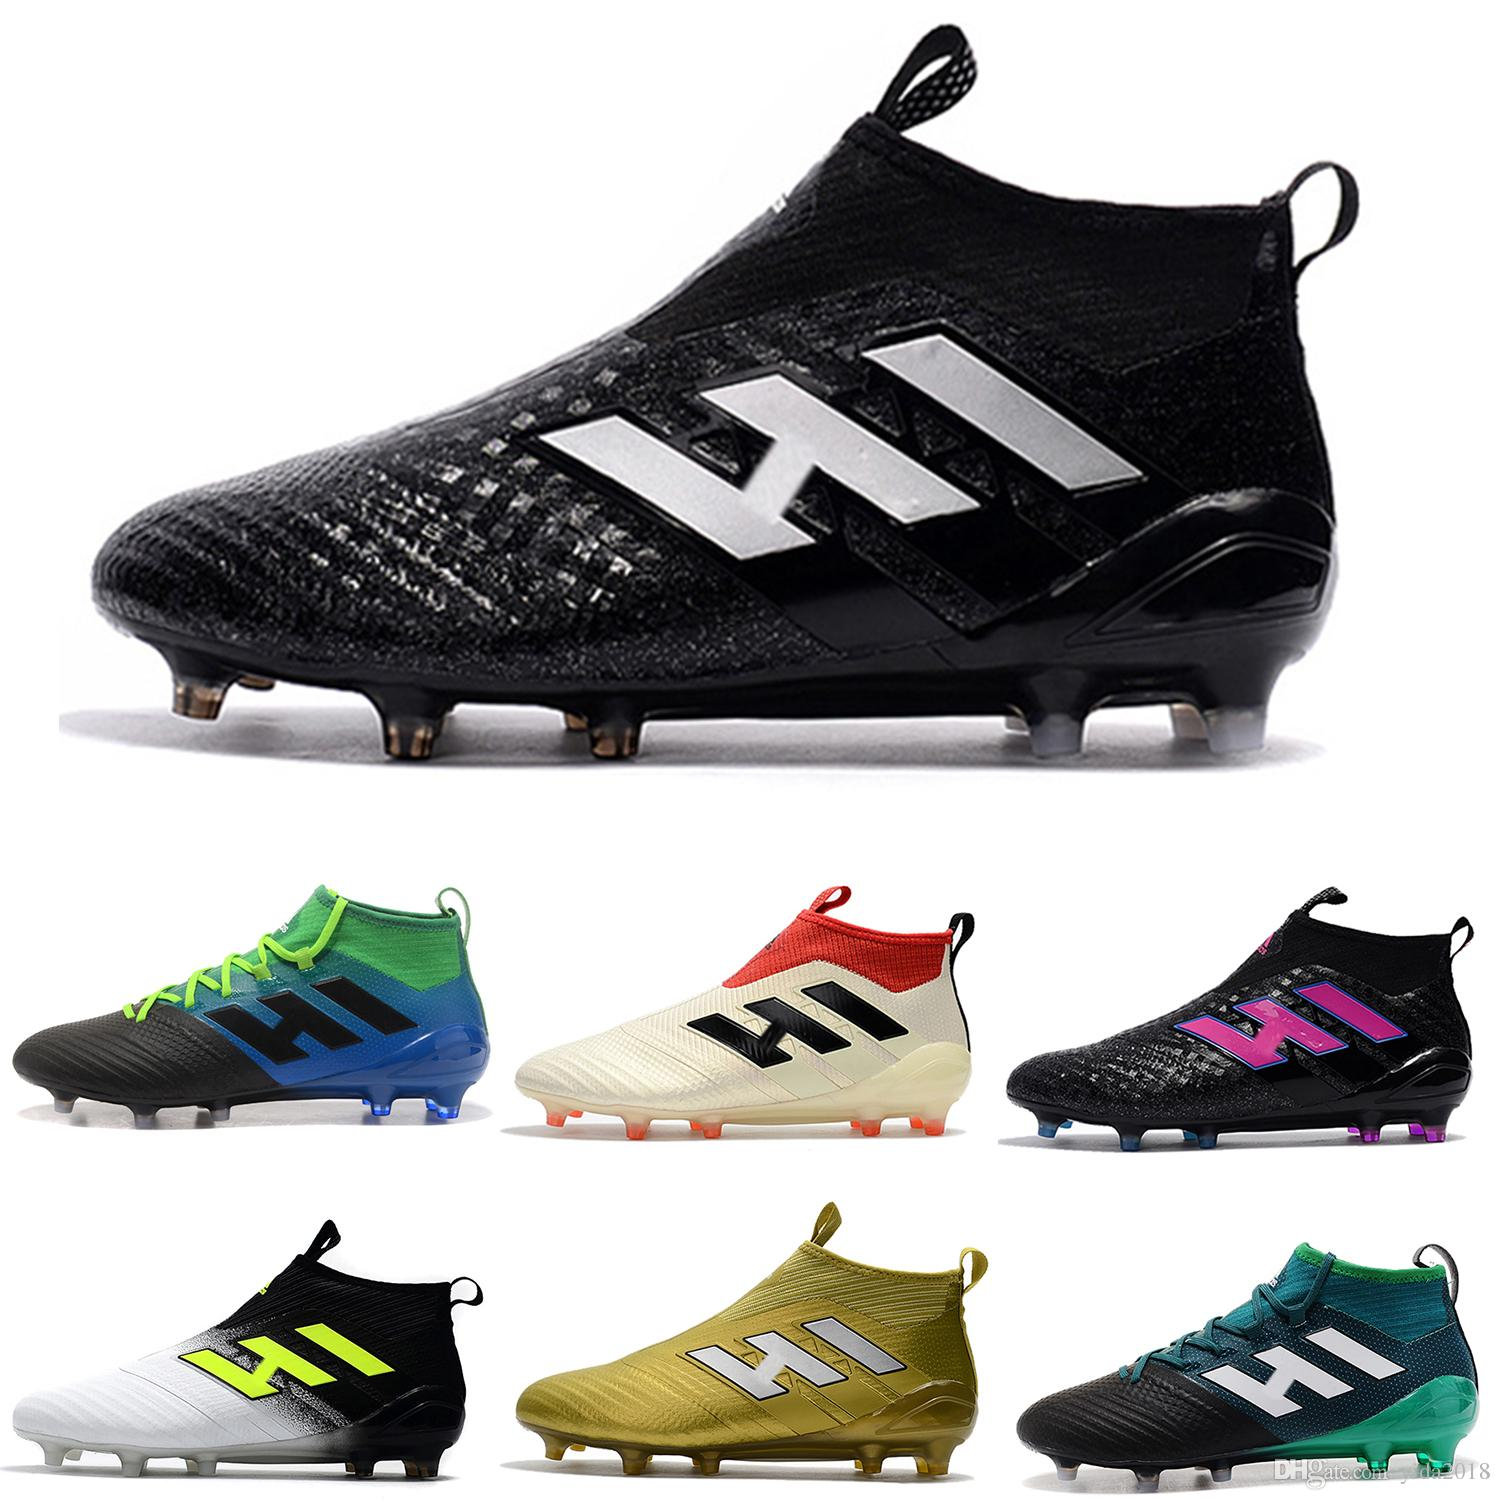 2018 Soccer Cleats Mercurial Superfly Predator 18+x Pogba FG Accelerator DB Soccer Shoes High Ankle Cristiano Ronaldo Mens Football Boots